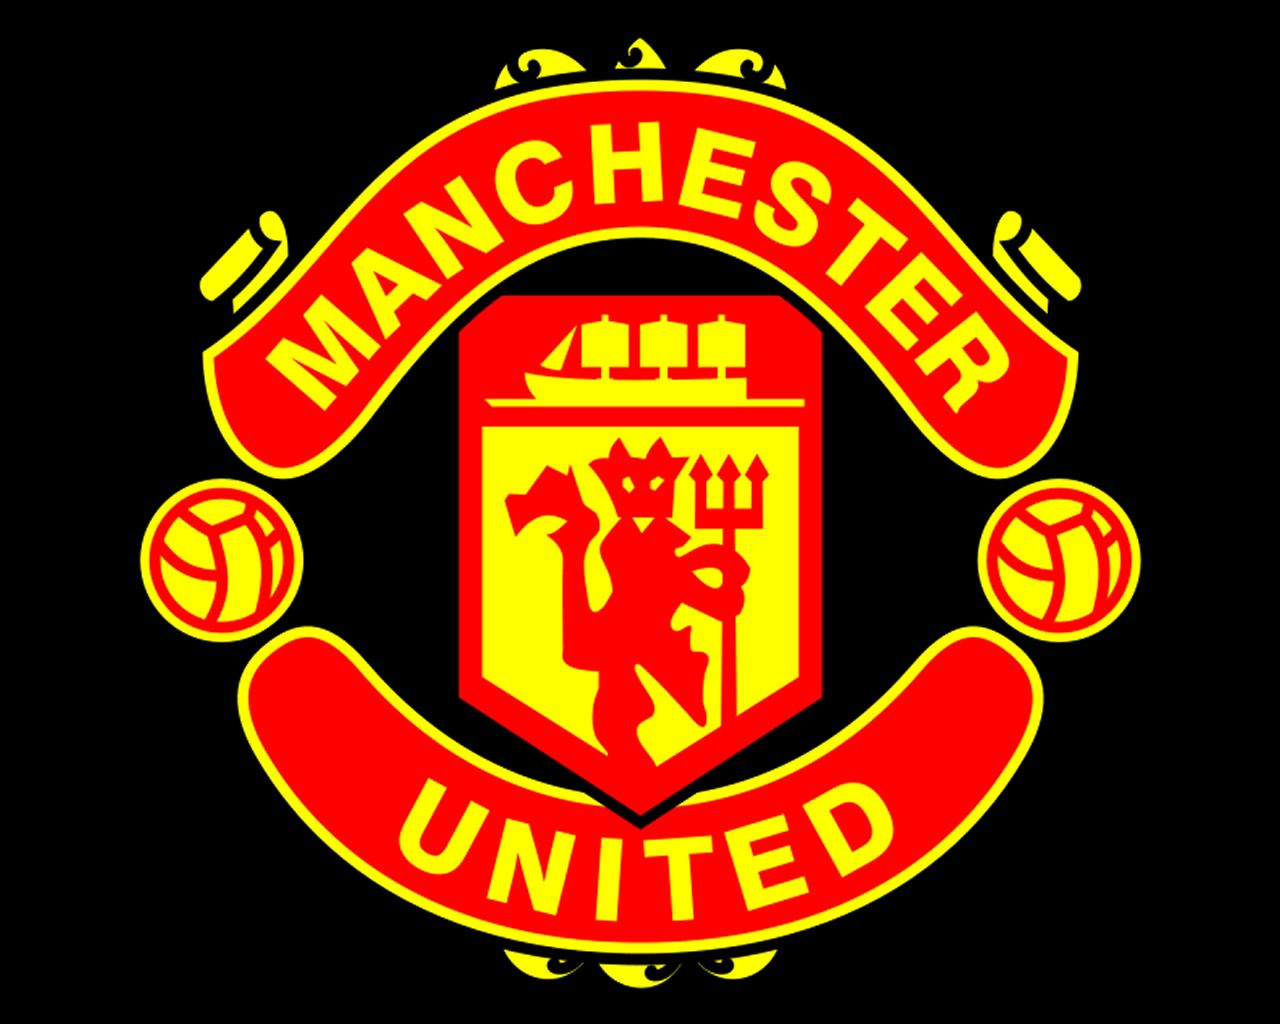 photo logo manchester united gratuit